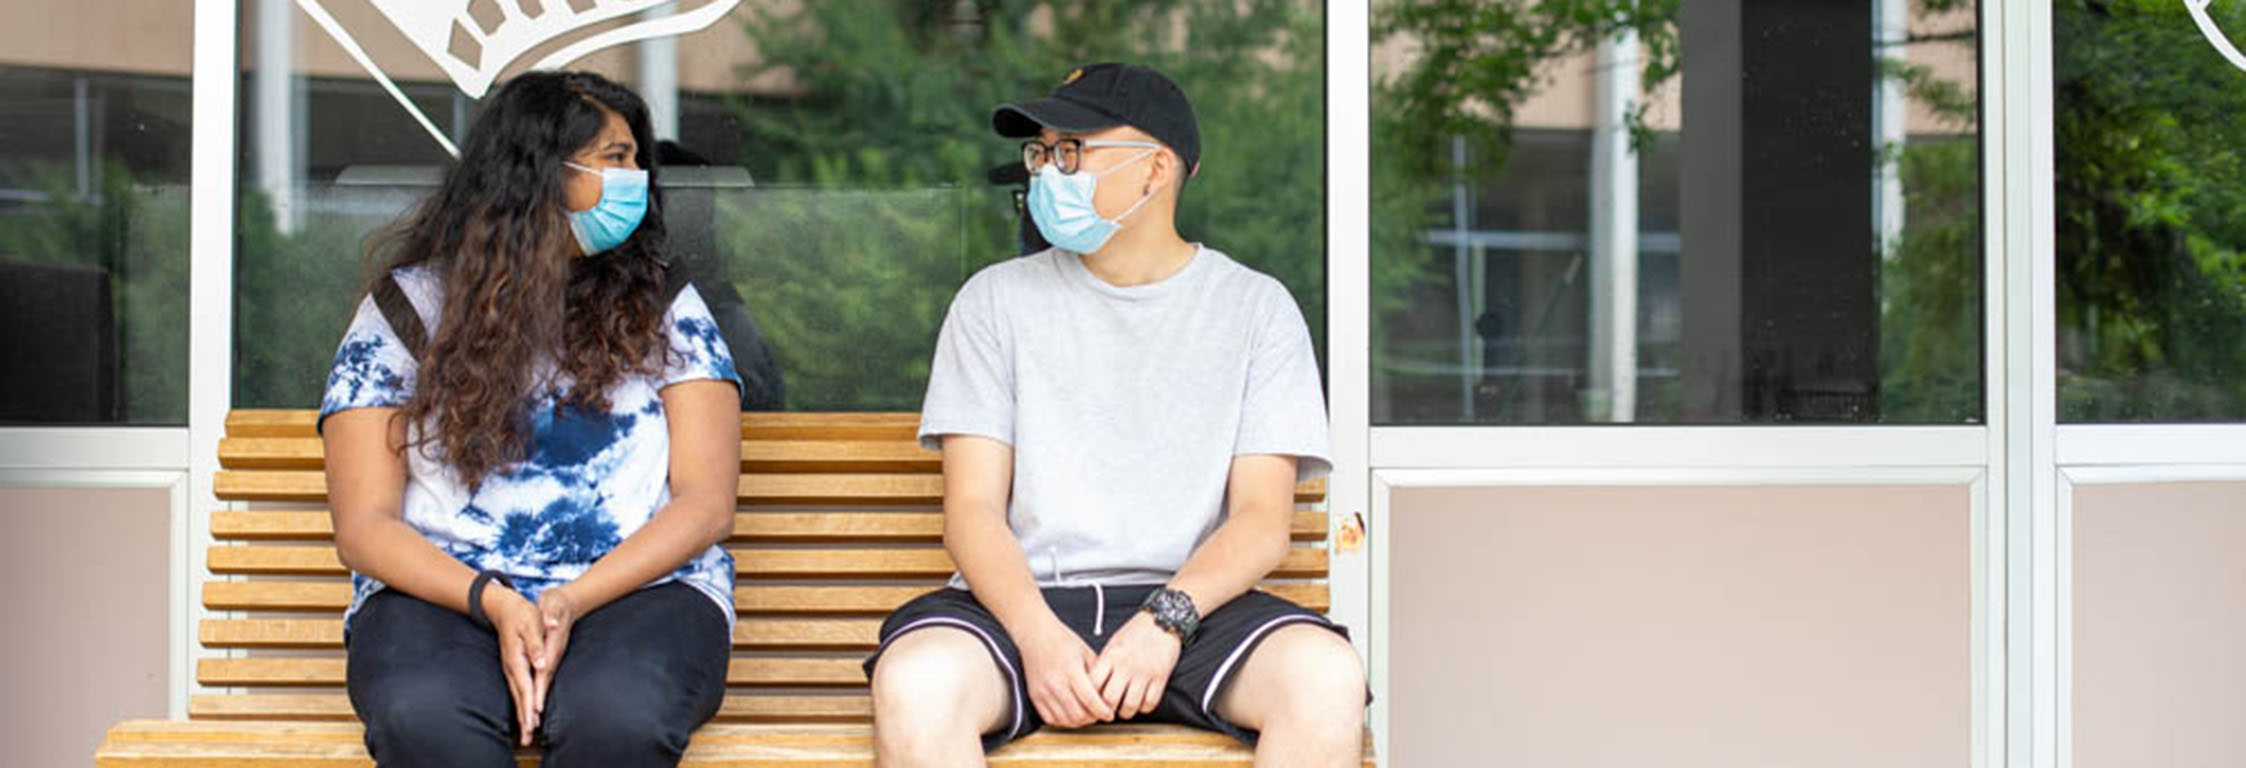 Two students wearing masks sit outside Flix Cafe.